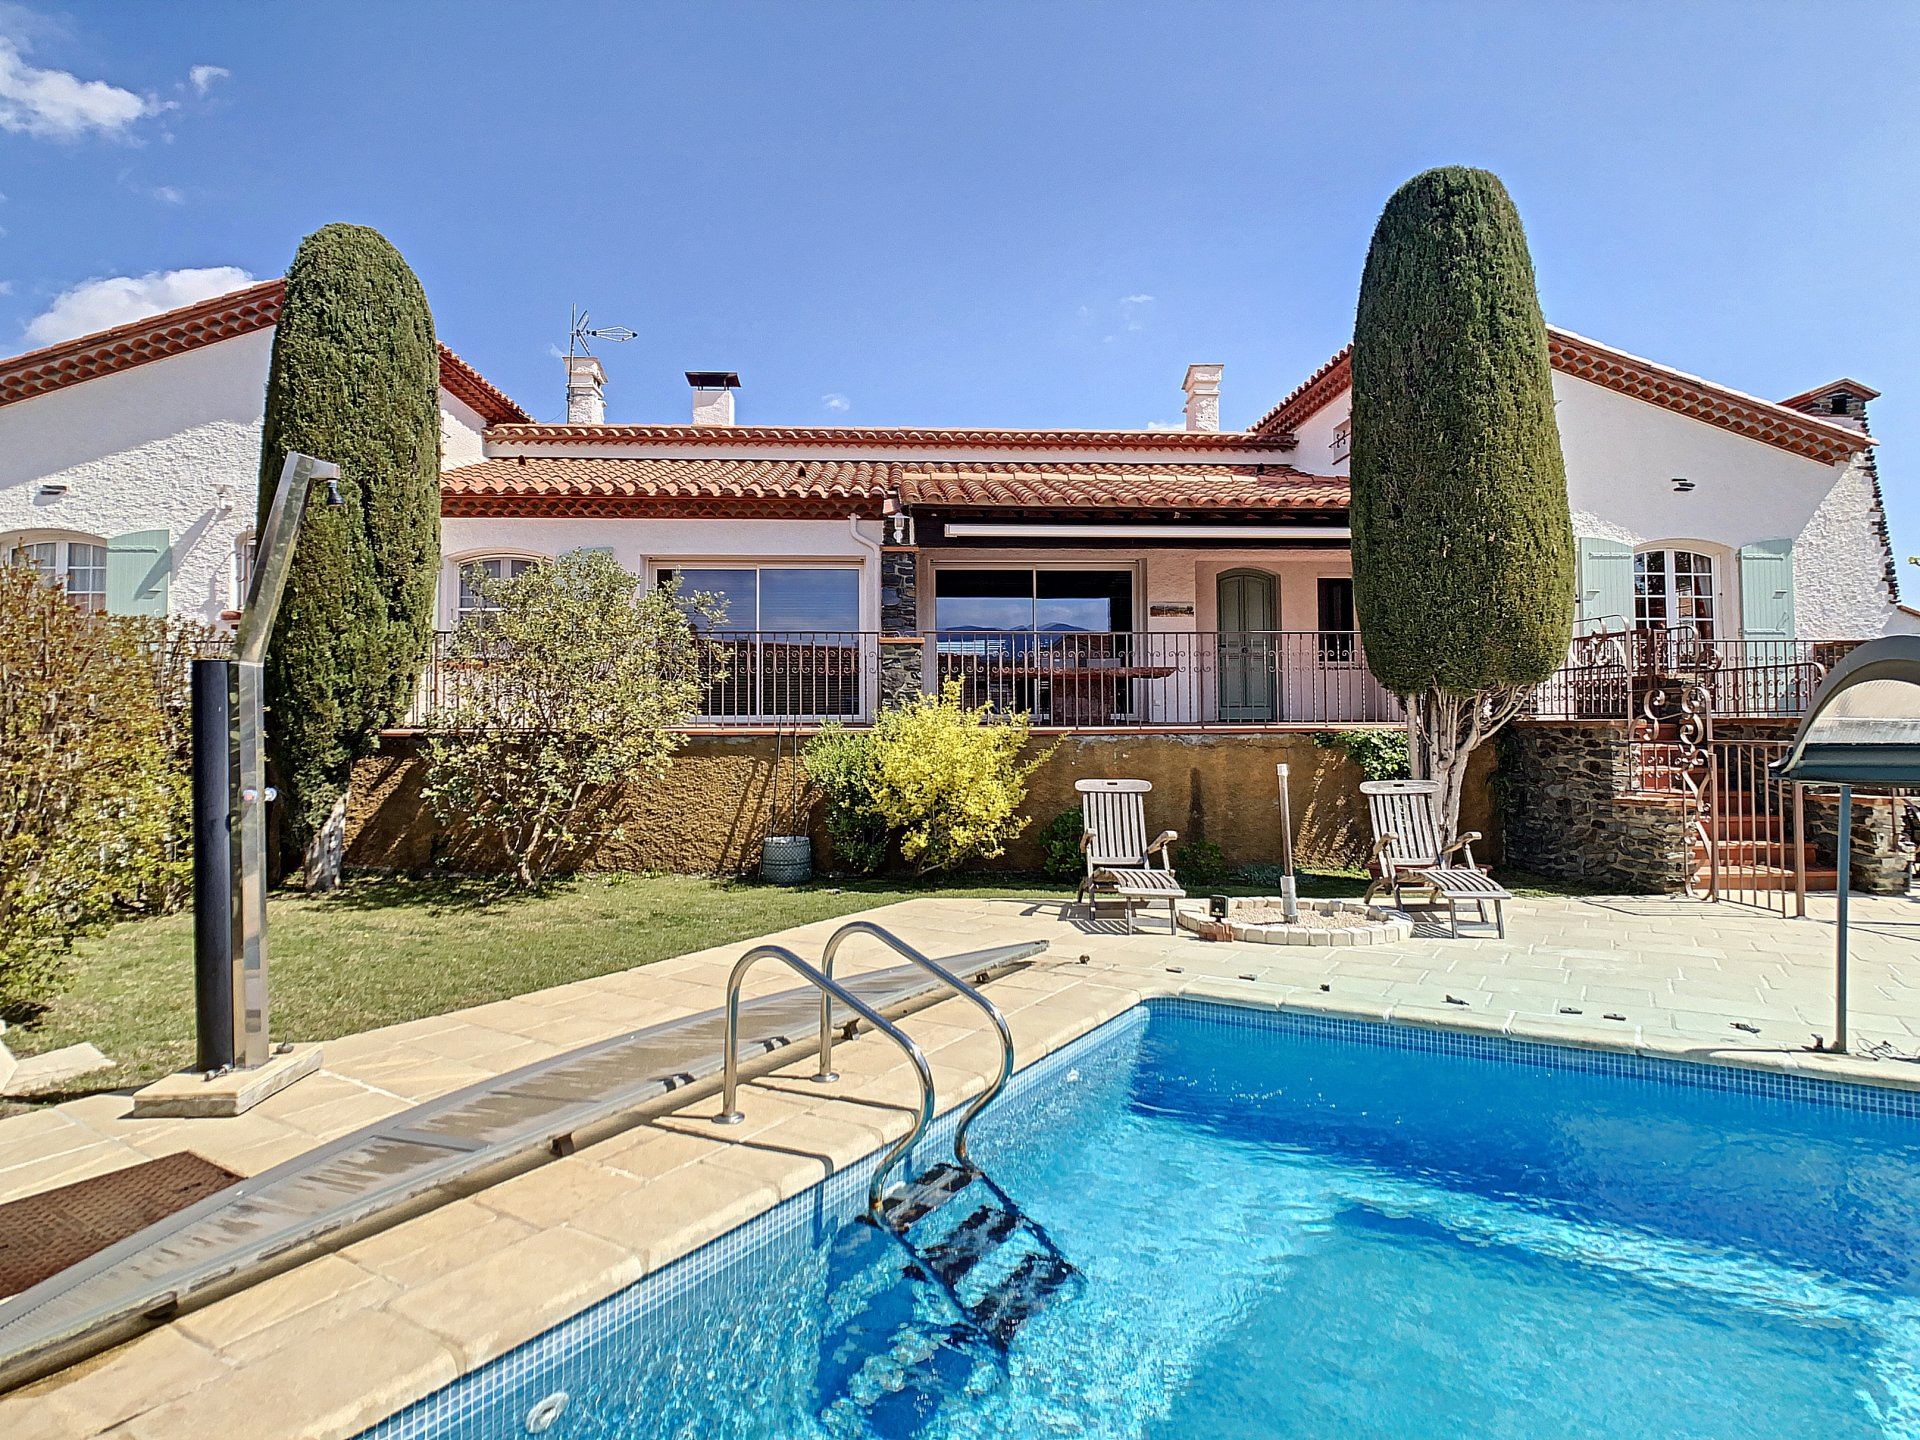 SPACIOUS AND COMFORTABLE FAMILY HOME WITH POOL, LE BOULOU